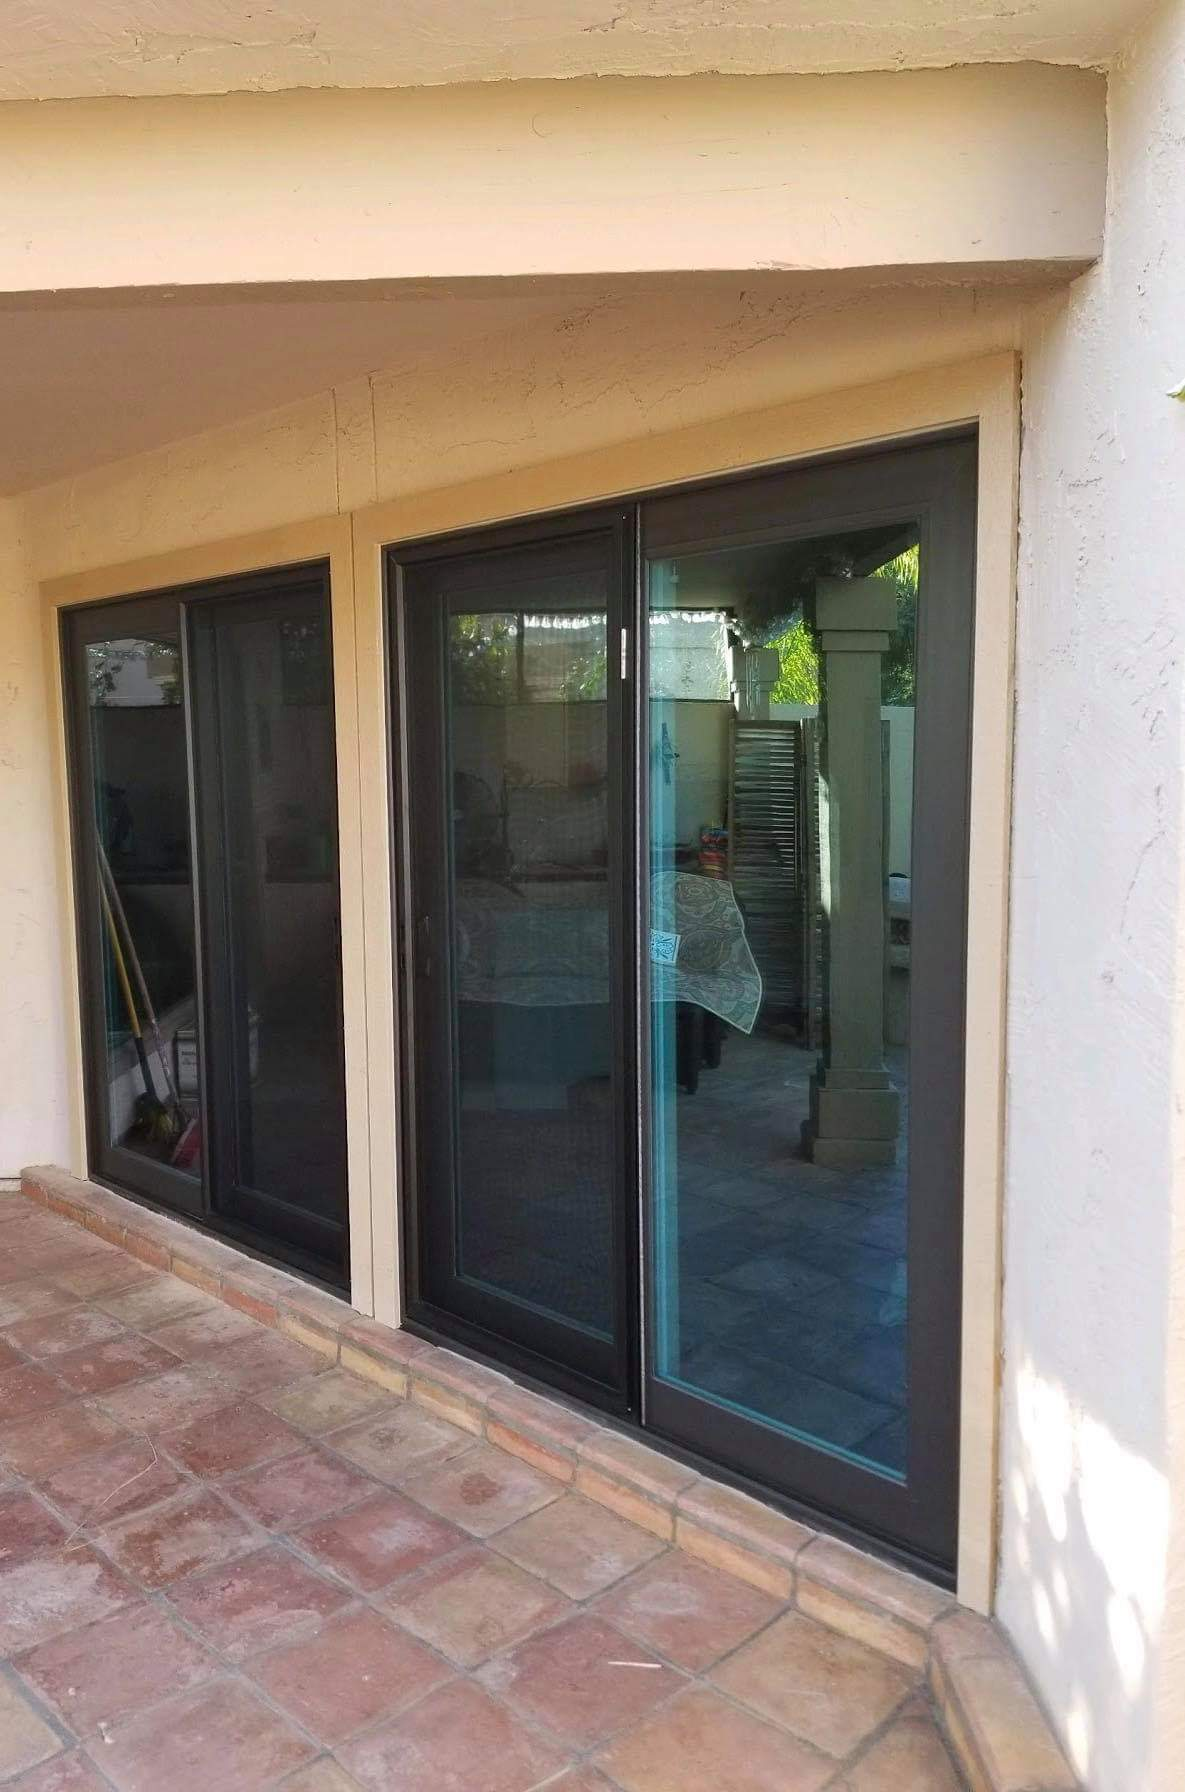 Arizona Window and Door in Scottsdale and Tucson showing sliding multipanel door